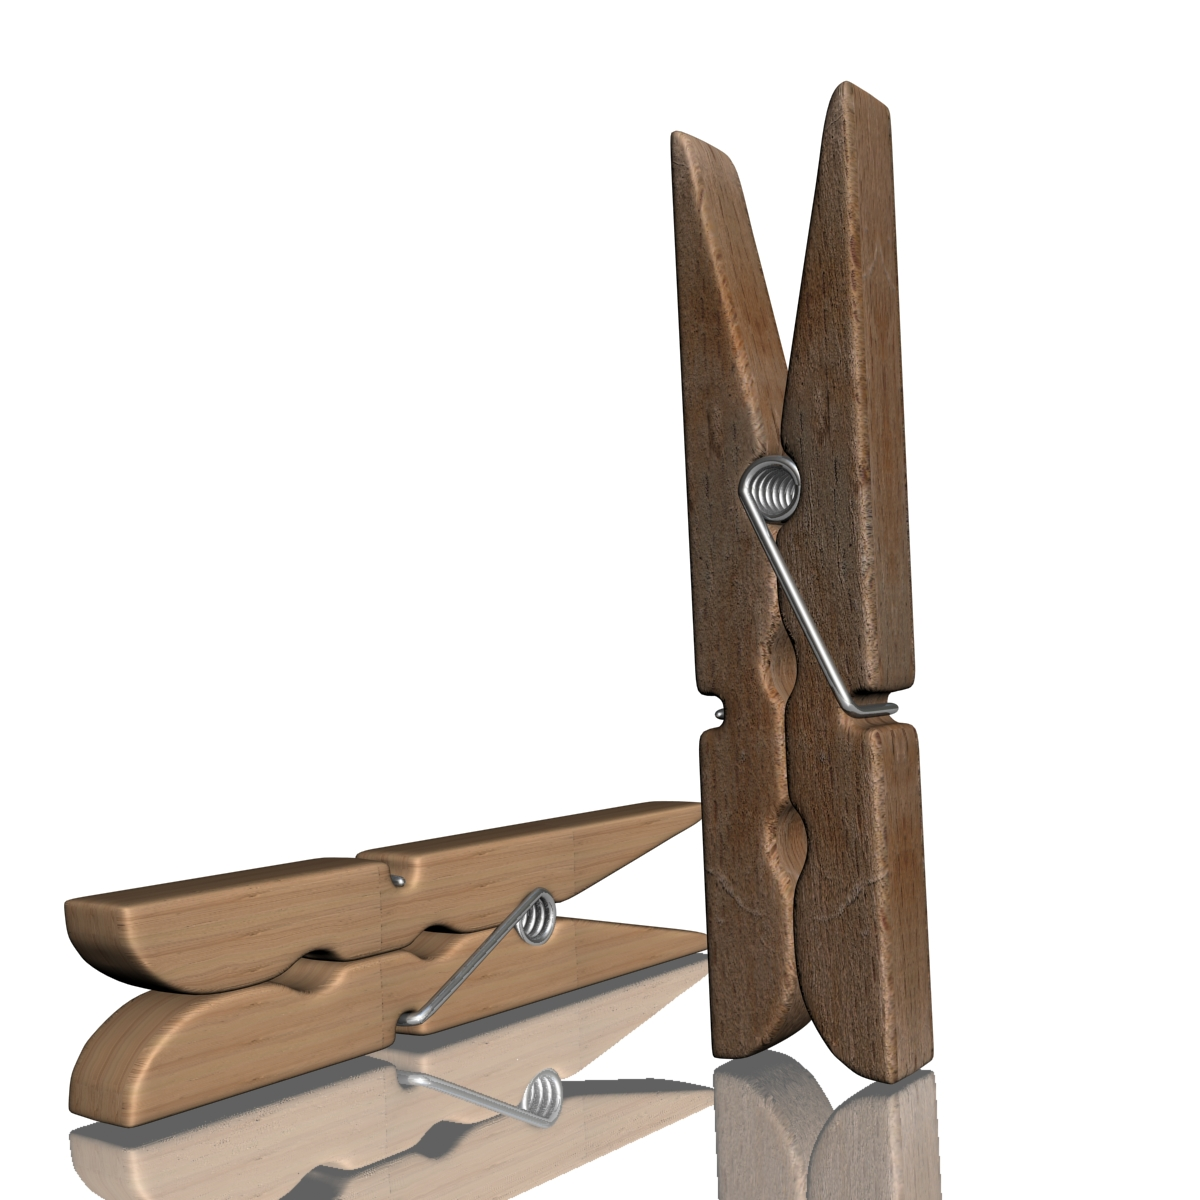 clothespin-02 3d model 3ds max fbx obj 156273